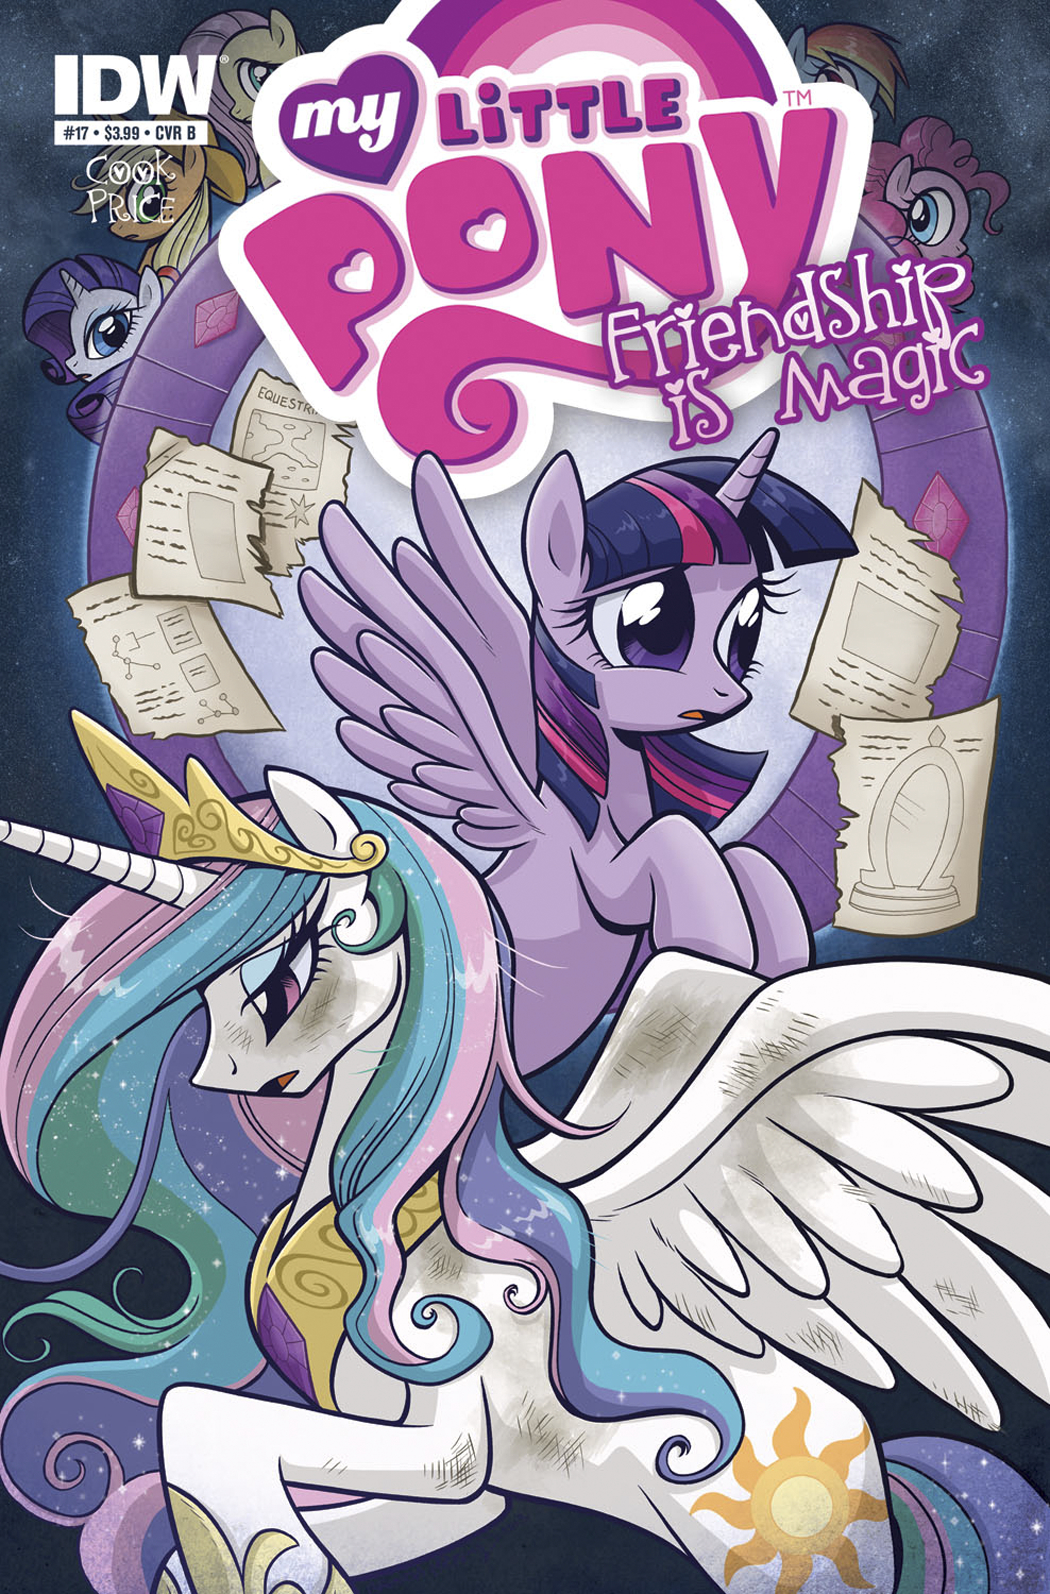 MY LITTLE PONY FRIENDSHIP IS MAGIC #17 FREE 10 COPY INCV